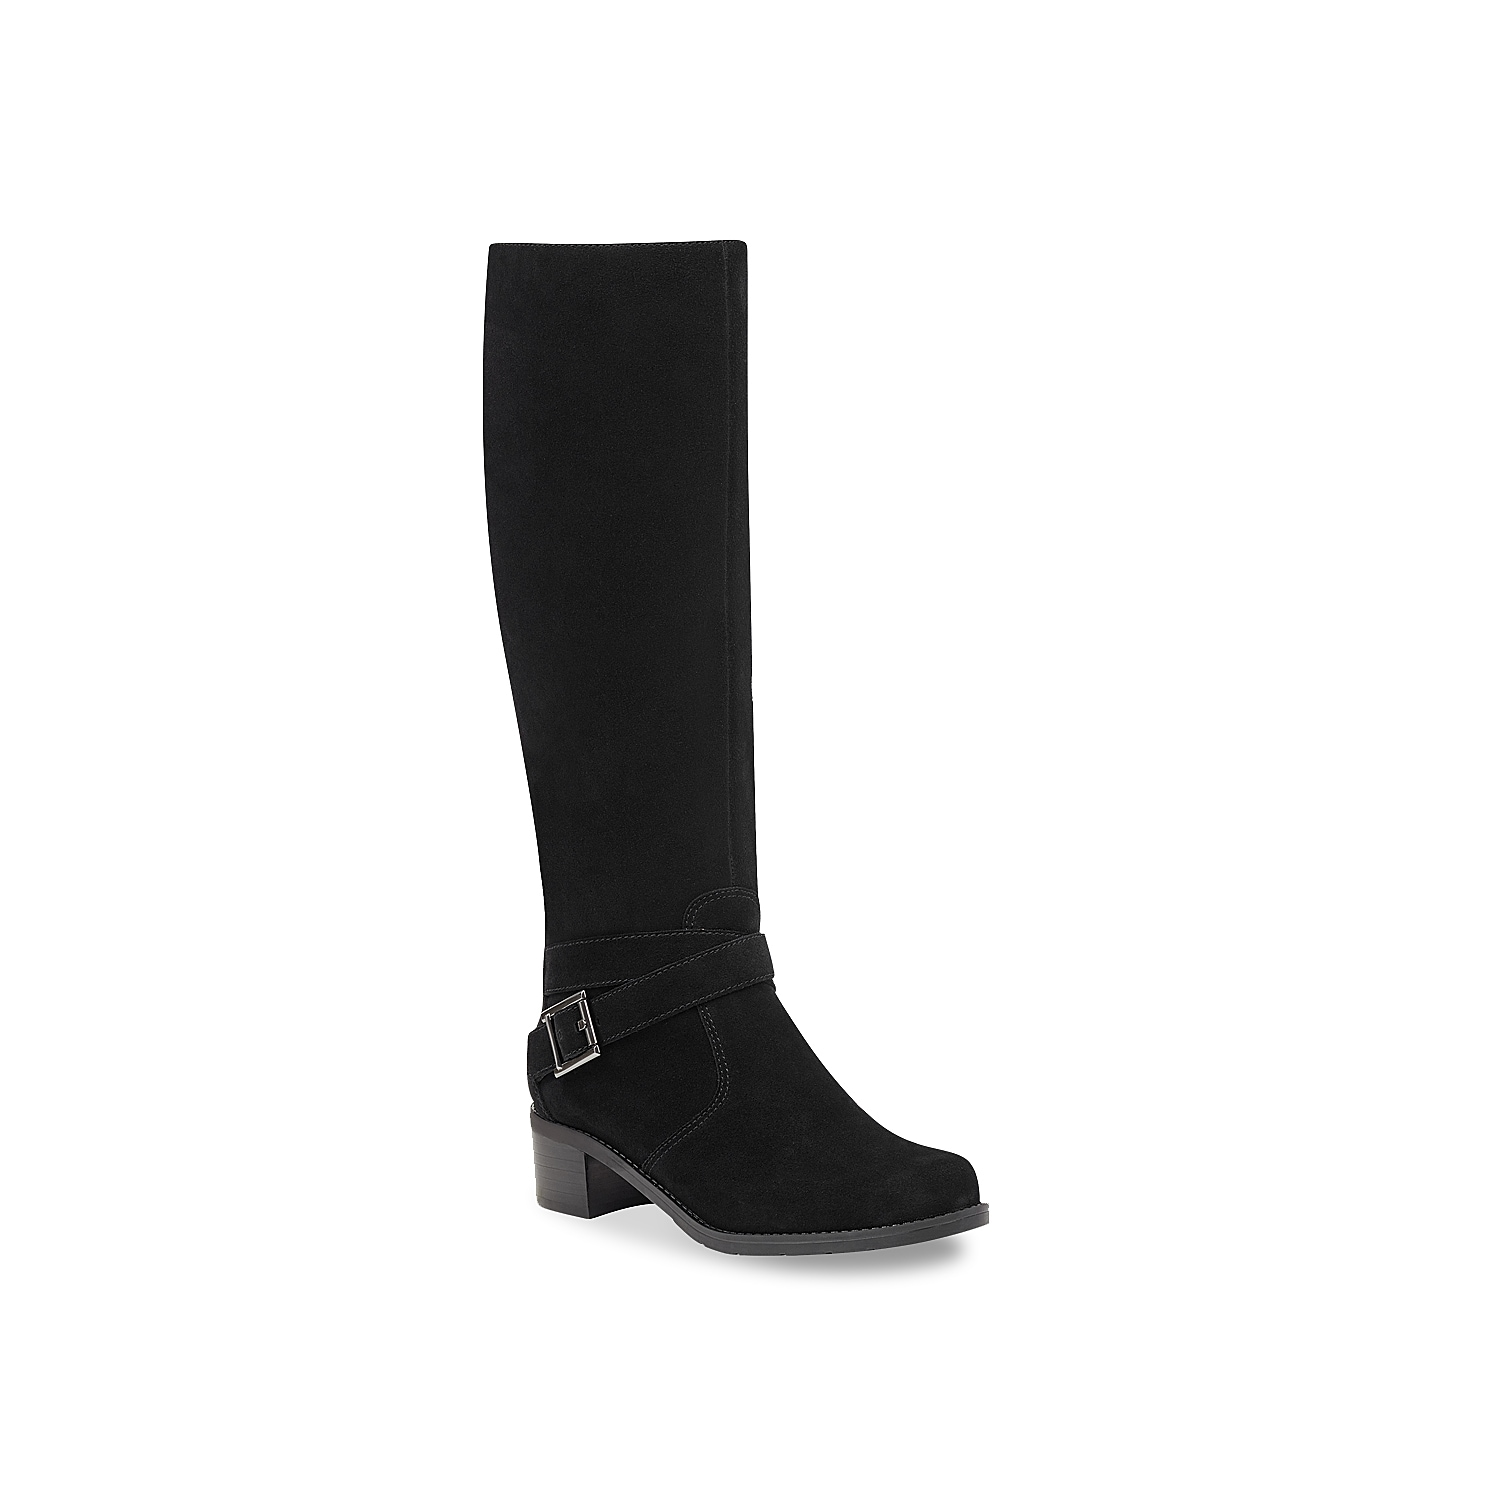 The Nitefall riding boot from Easy Spirit will give your ensemble a long-lasting look. This silhouette features a tall shaft and accented with a buckle detail that will spruce up your outfit! Click here for Boot Measuring Guide.